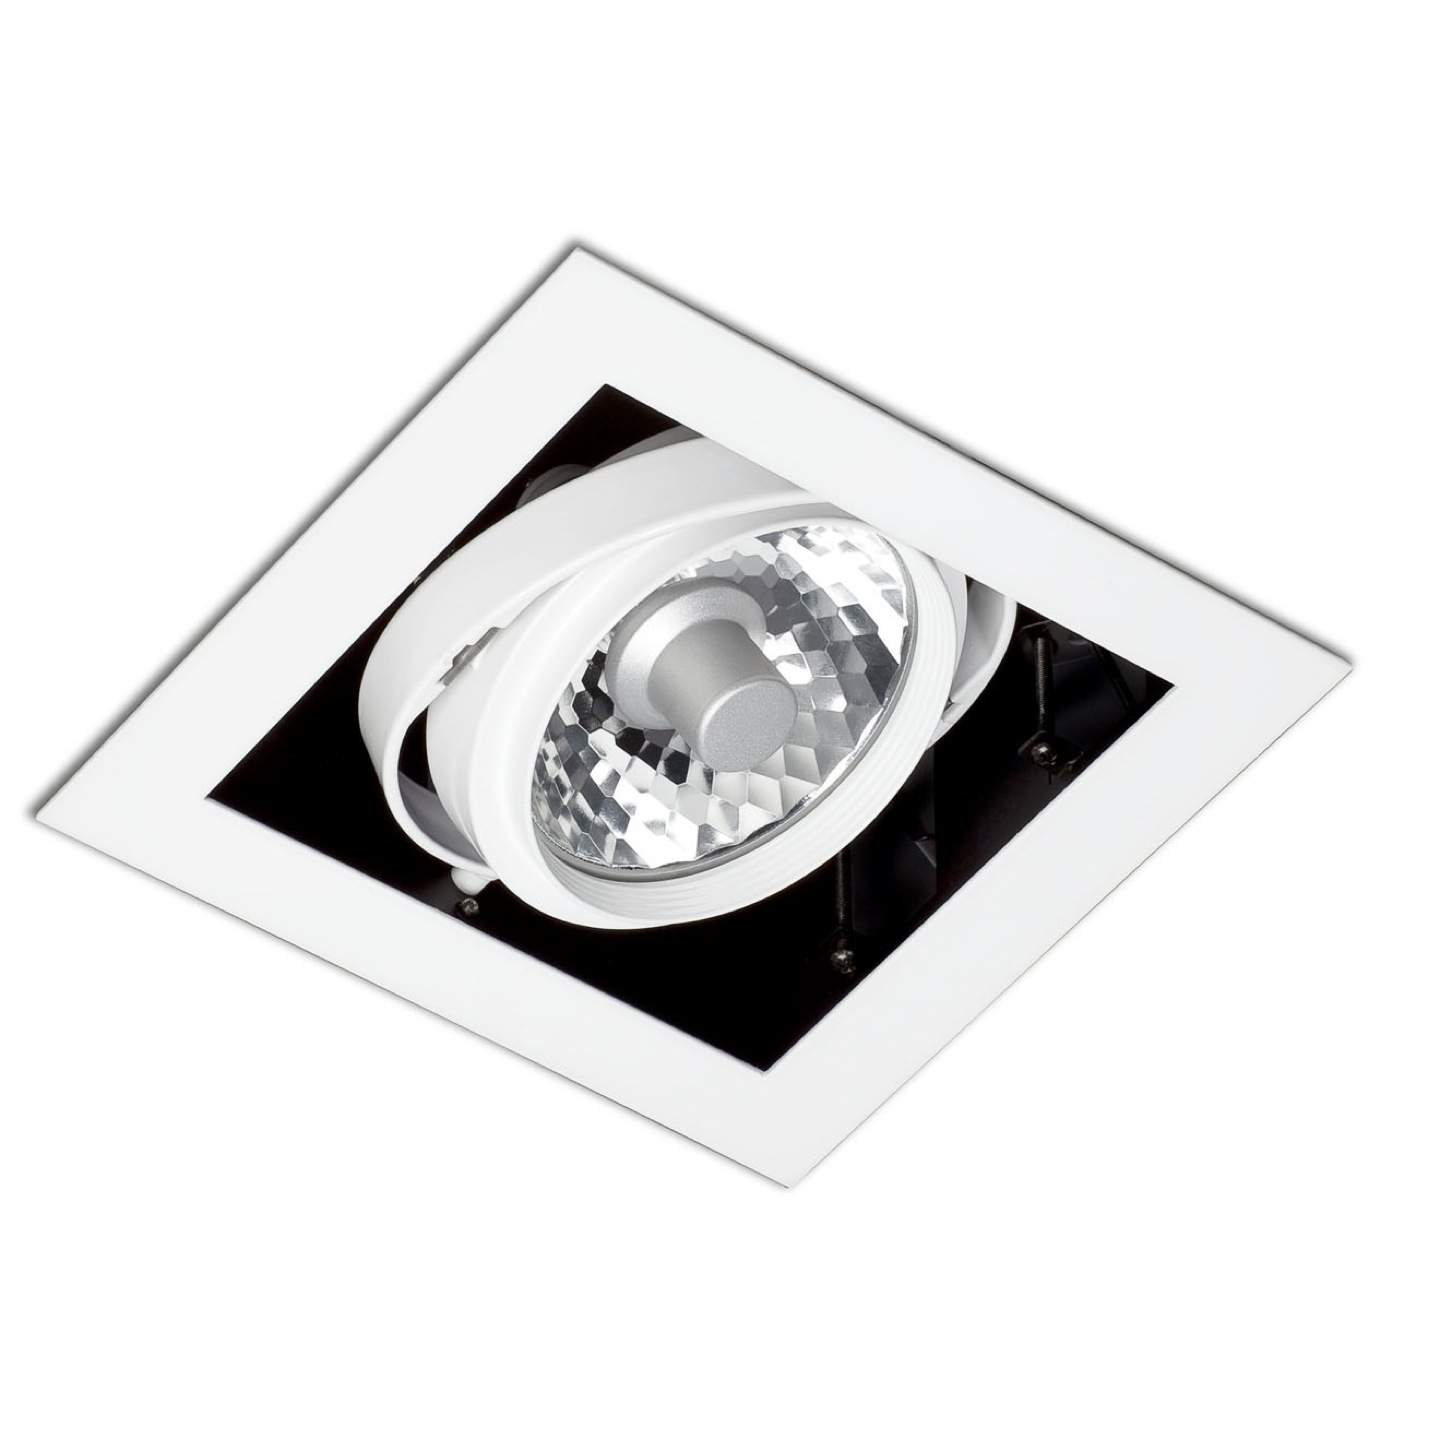 Morris Recessed Ceiling (body without PortaLámpara s) 1xelement Grey